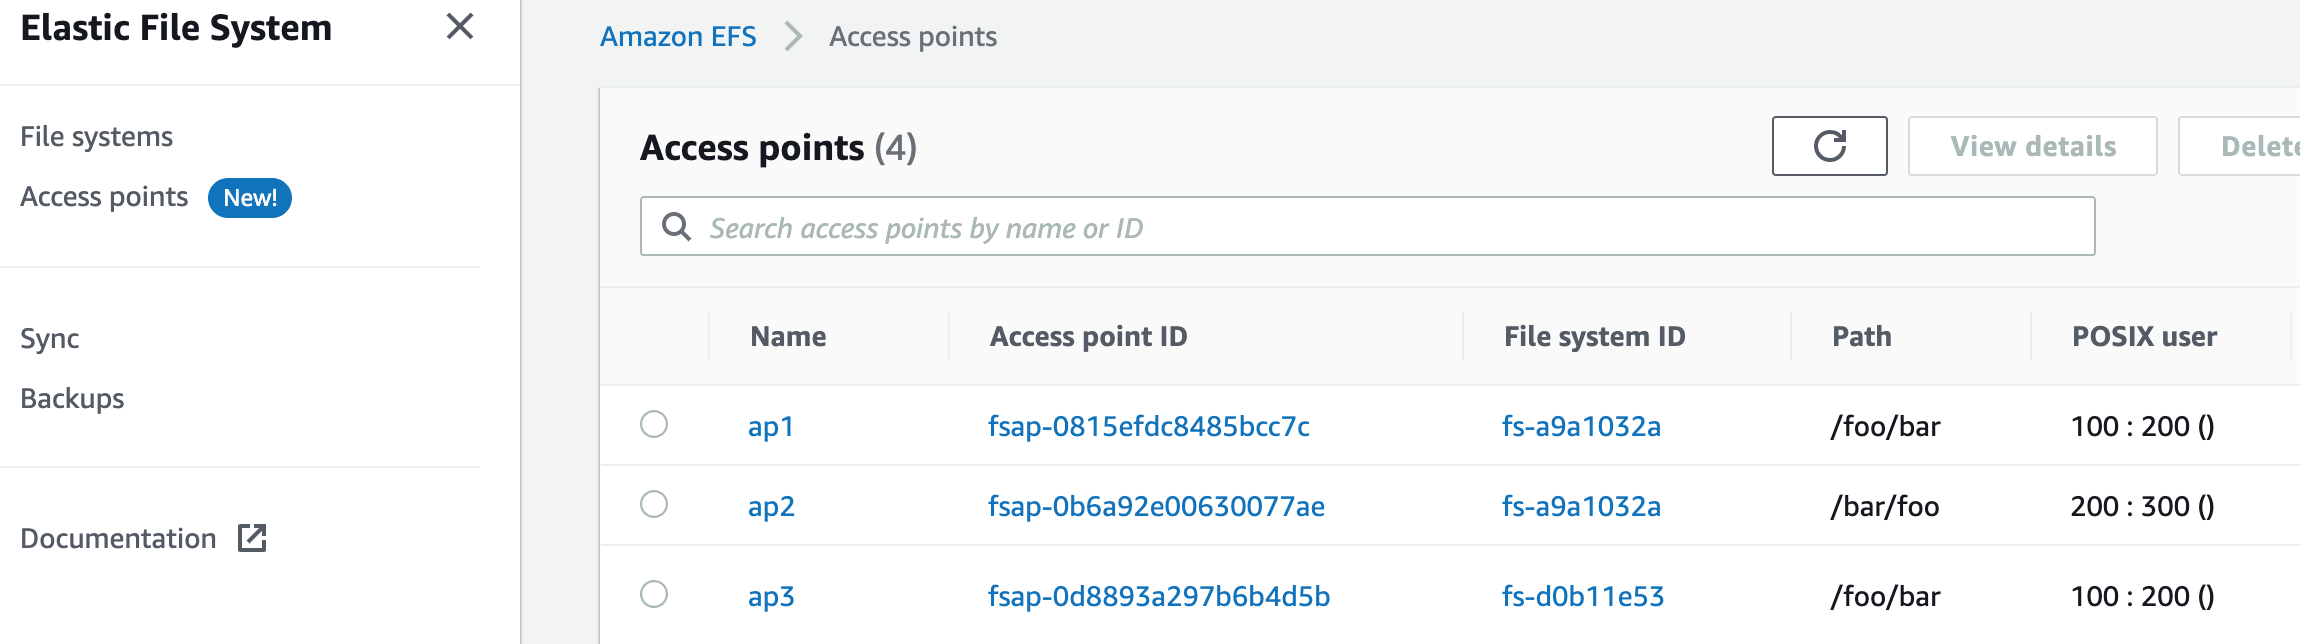 You now have an Access points-specific view for managing access points across your file systems.